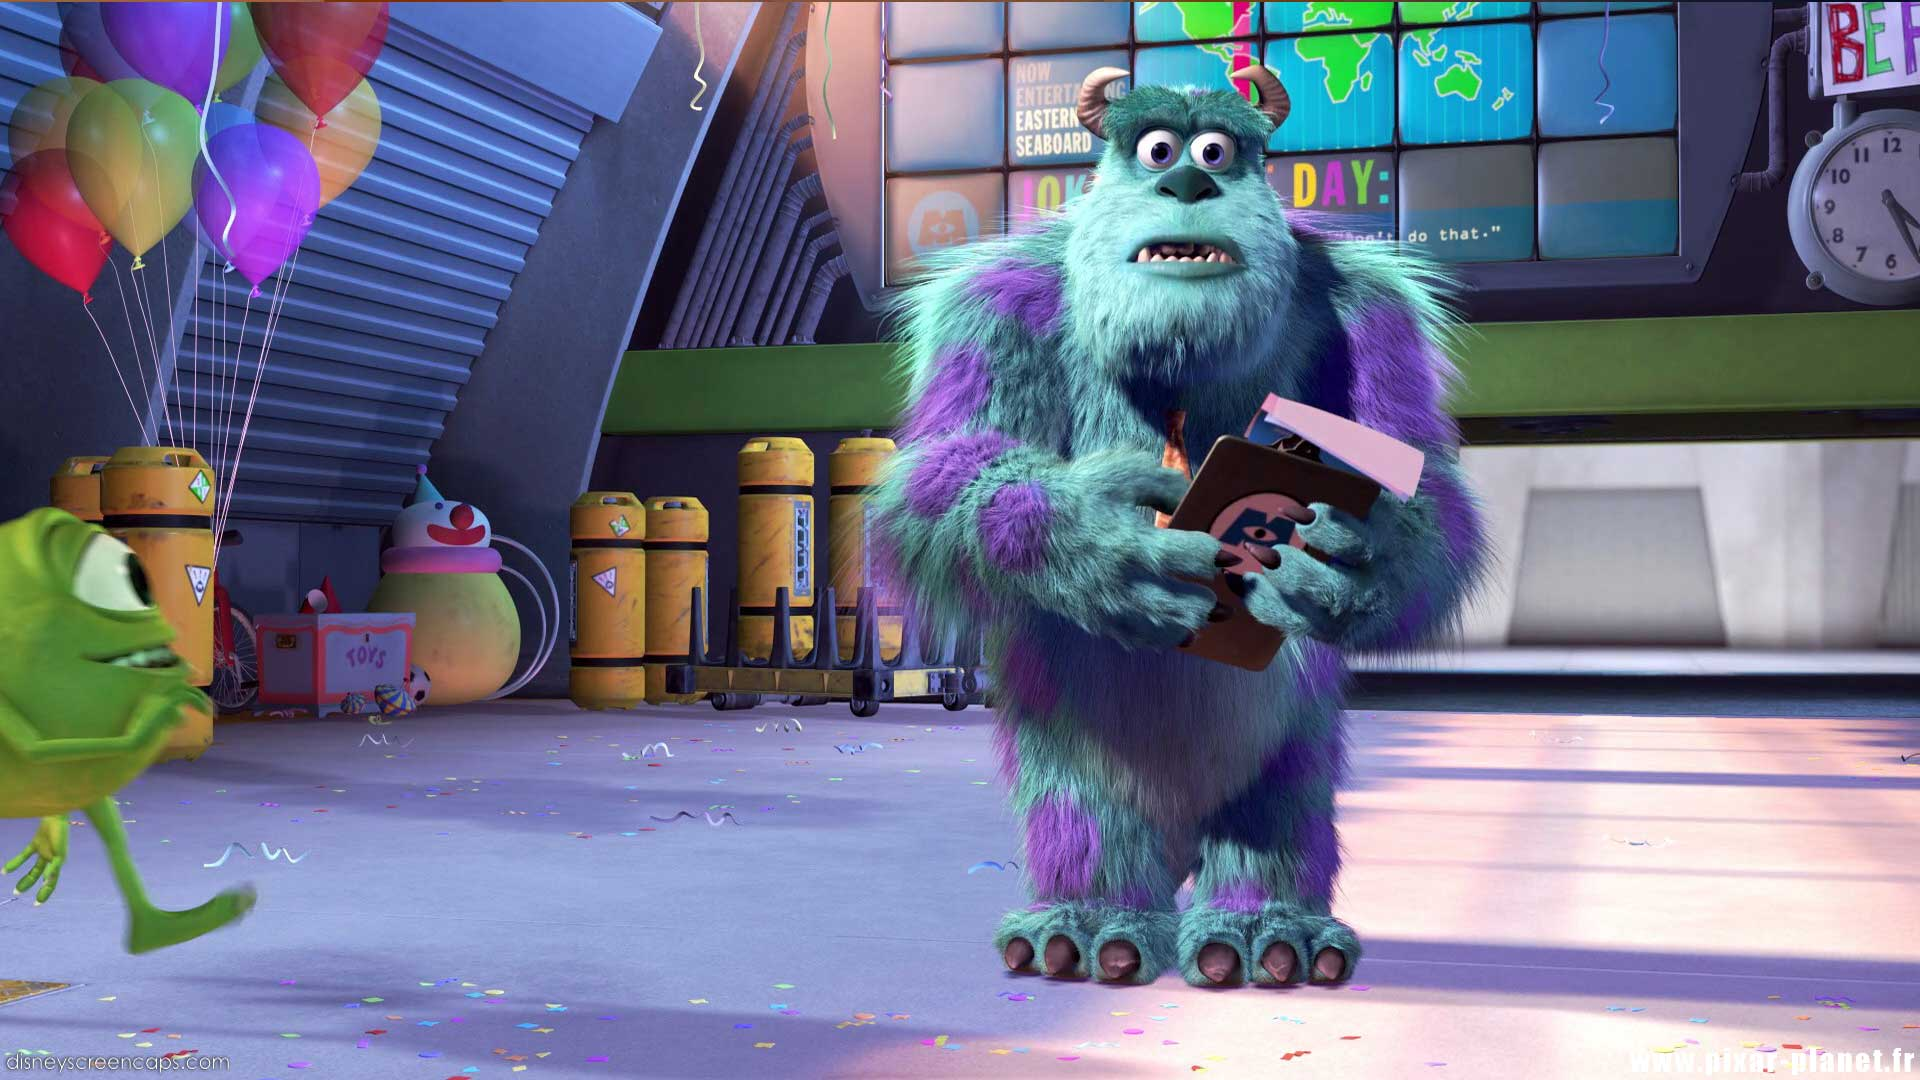 Monsters inc wallpapers wallpaper cave monsters inc backgrounds and monsters university wallpapers hd voltagebd Images